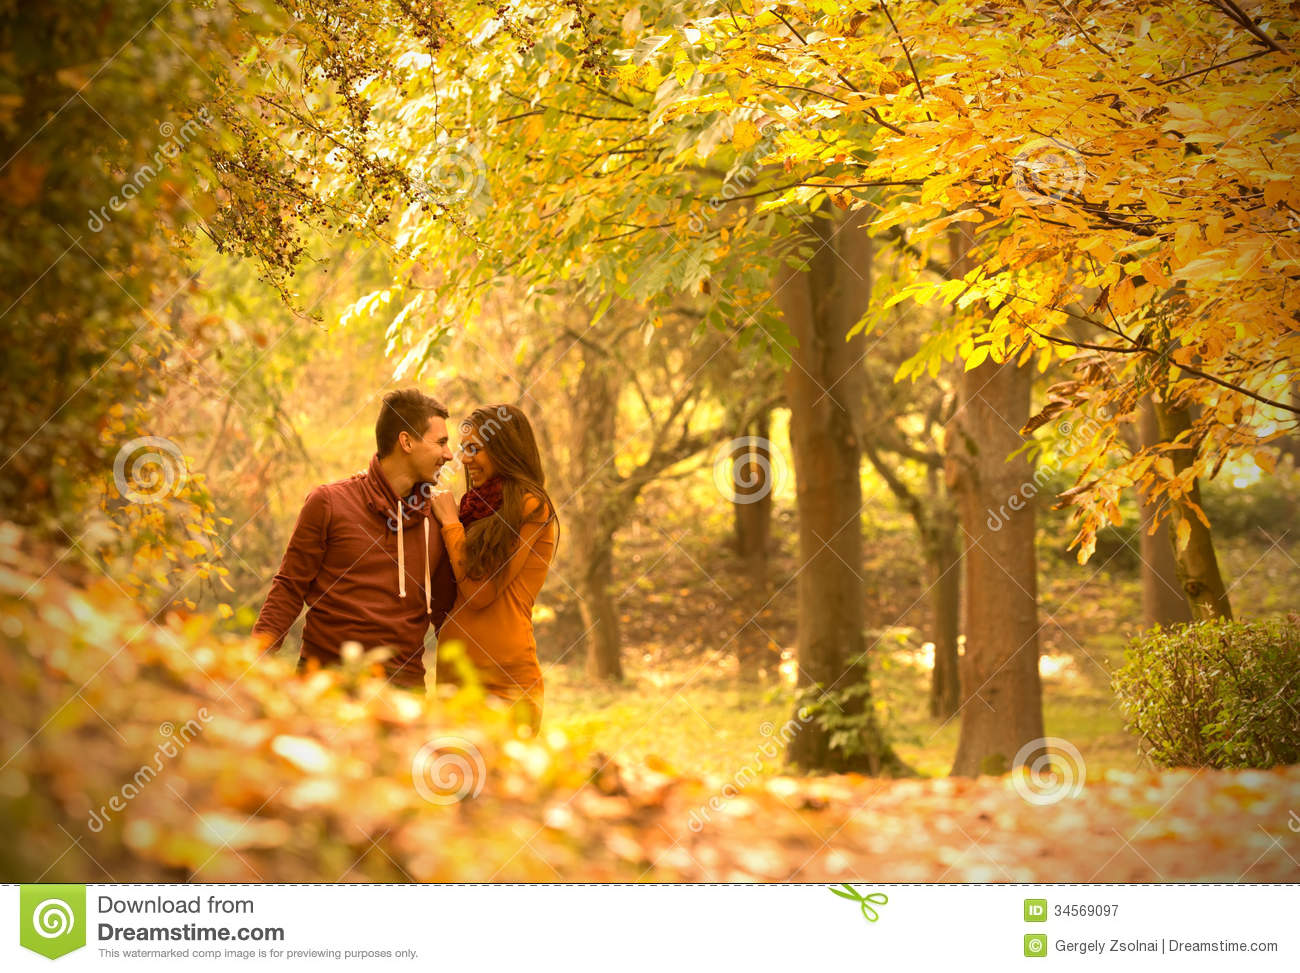 Fall Dog Wallpaper Passionate Love Stock Image Image Of Colorful Adult